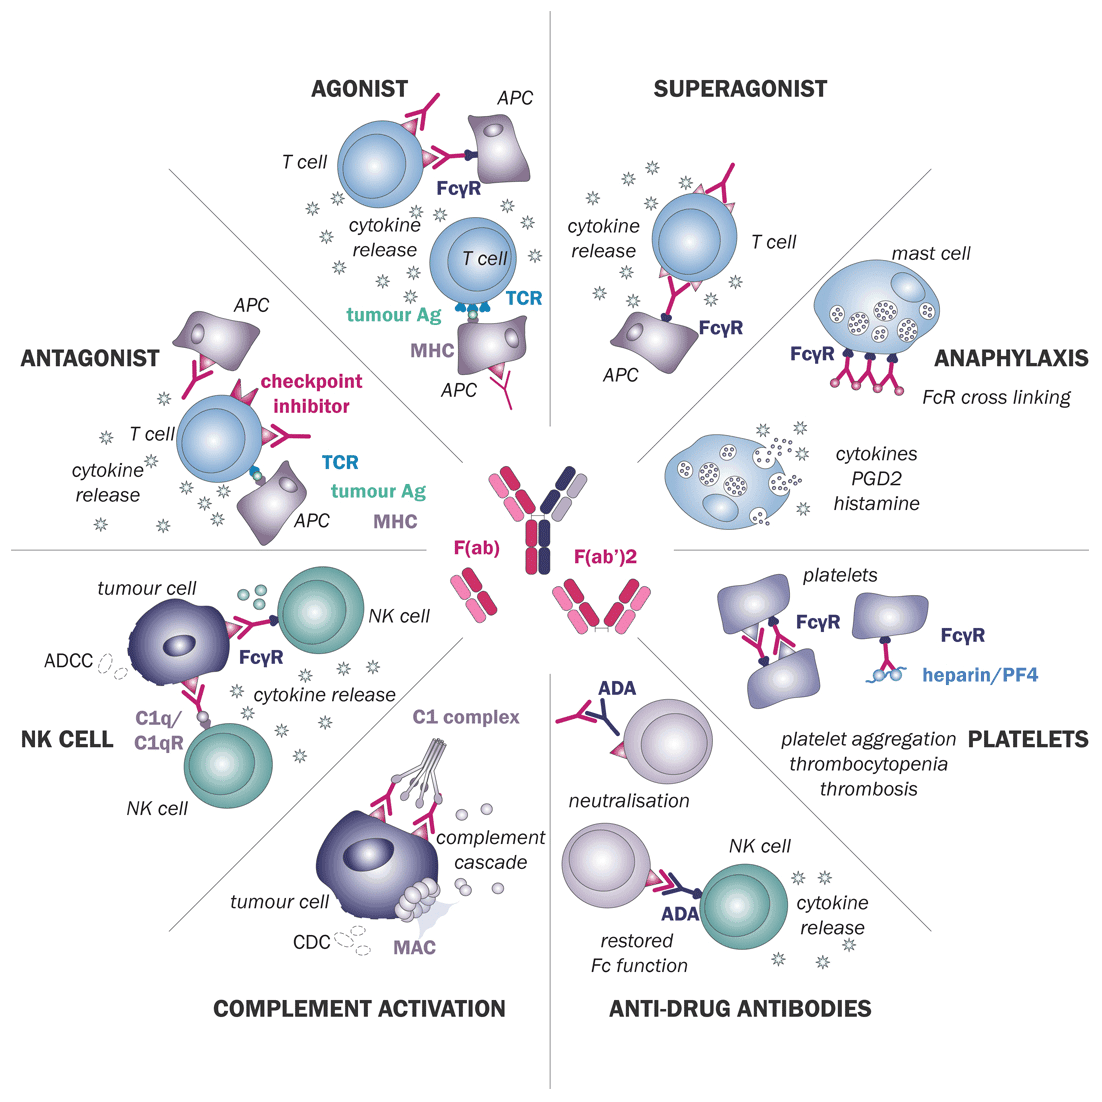 diagram illustrating the possible adverse drug interactions with immune cells